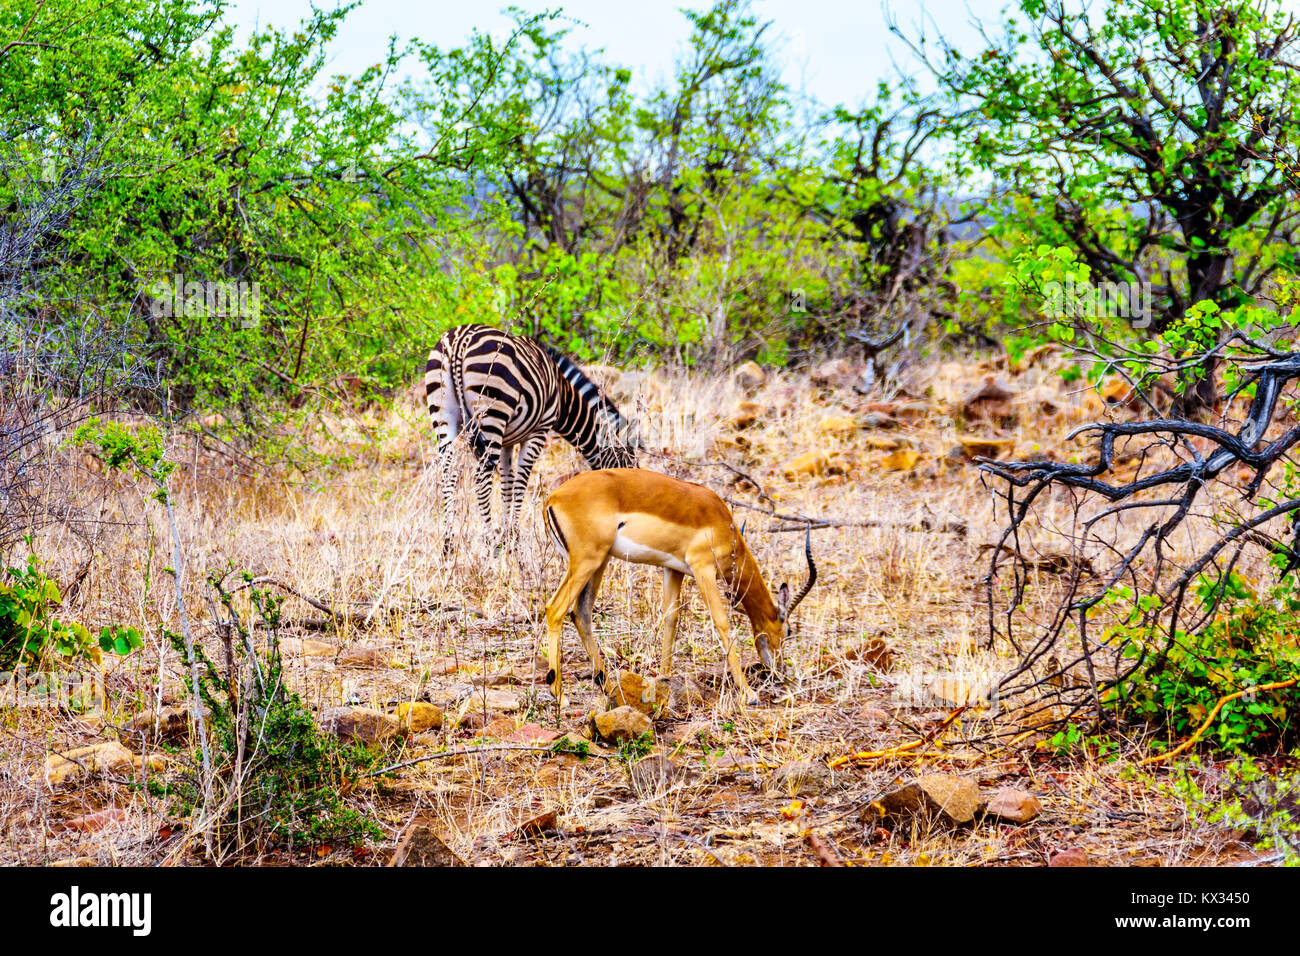 Zebra and Impala grazing in the drought stricken savanna area of central Kruger Park in South Africa Stock Photo